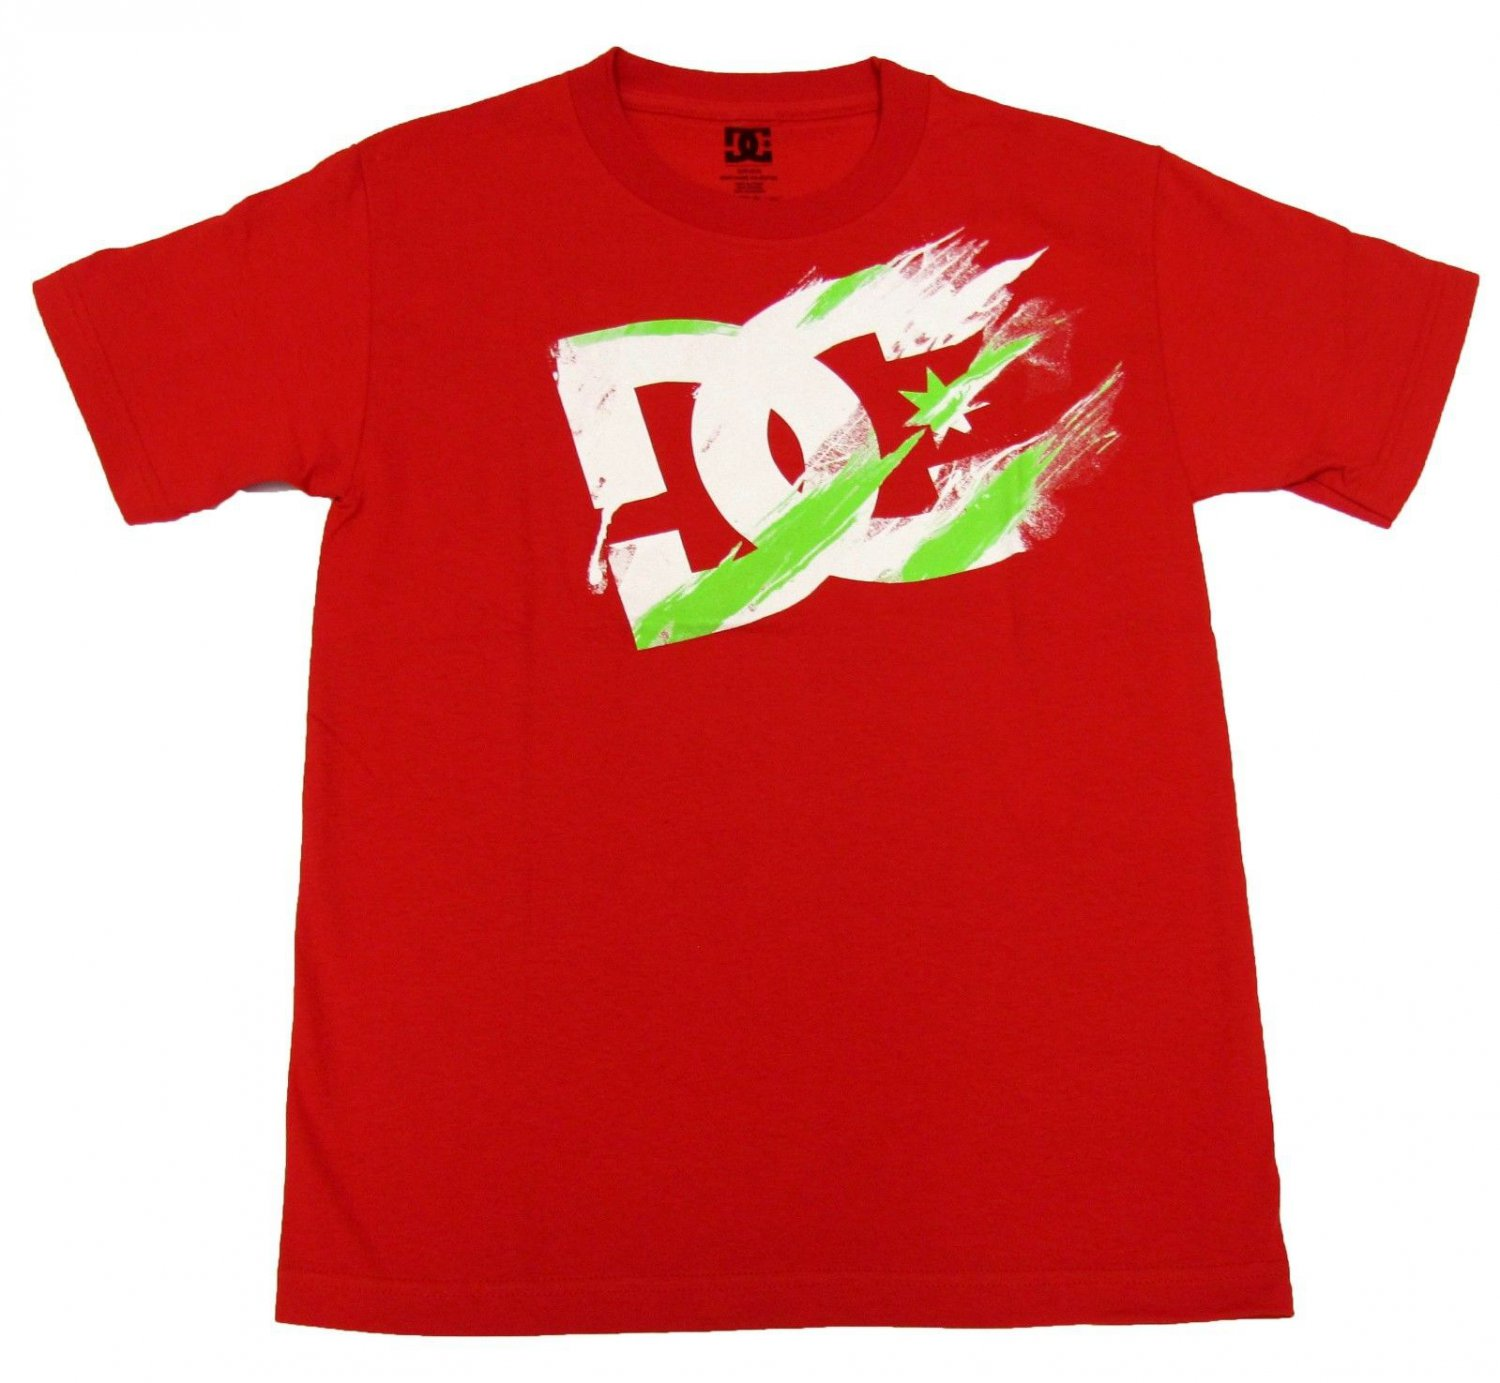 Dc Shoes Mens S Former Tee Shirt Red T-shirt with White and Green Logo Small New